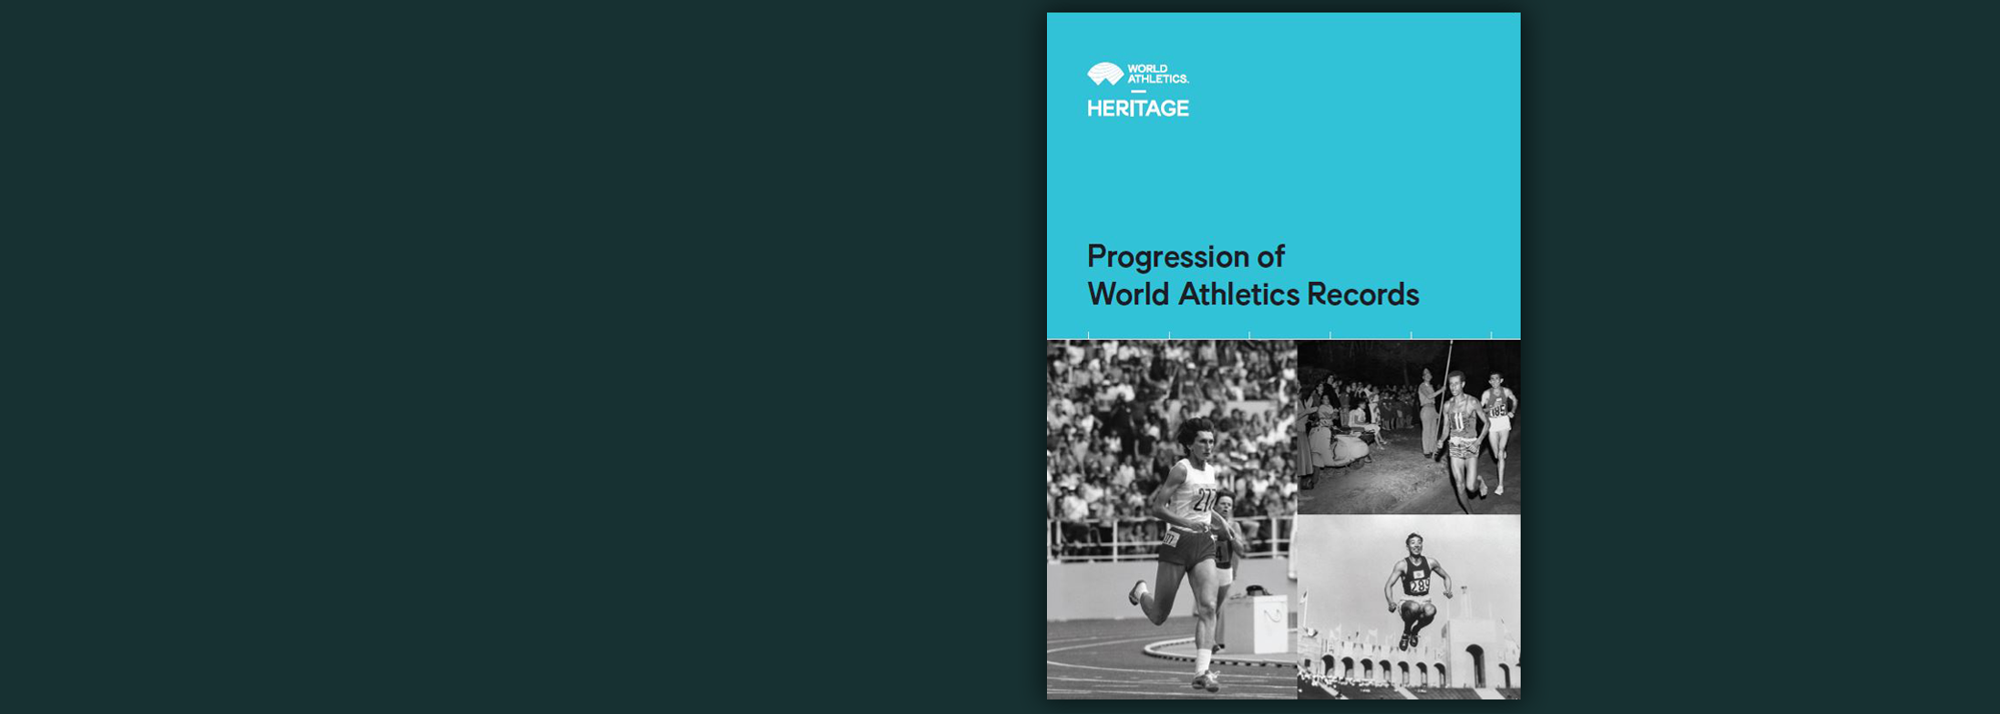 The latest edition of the 'Progression of World Athletics Records', published in 2020 by World Athletics Heritage, is now available as an ebook.